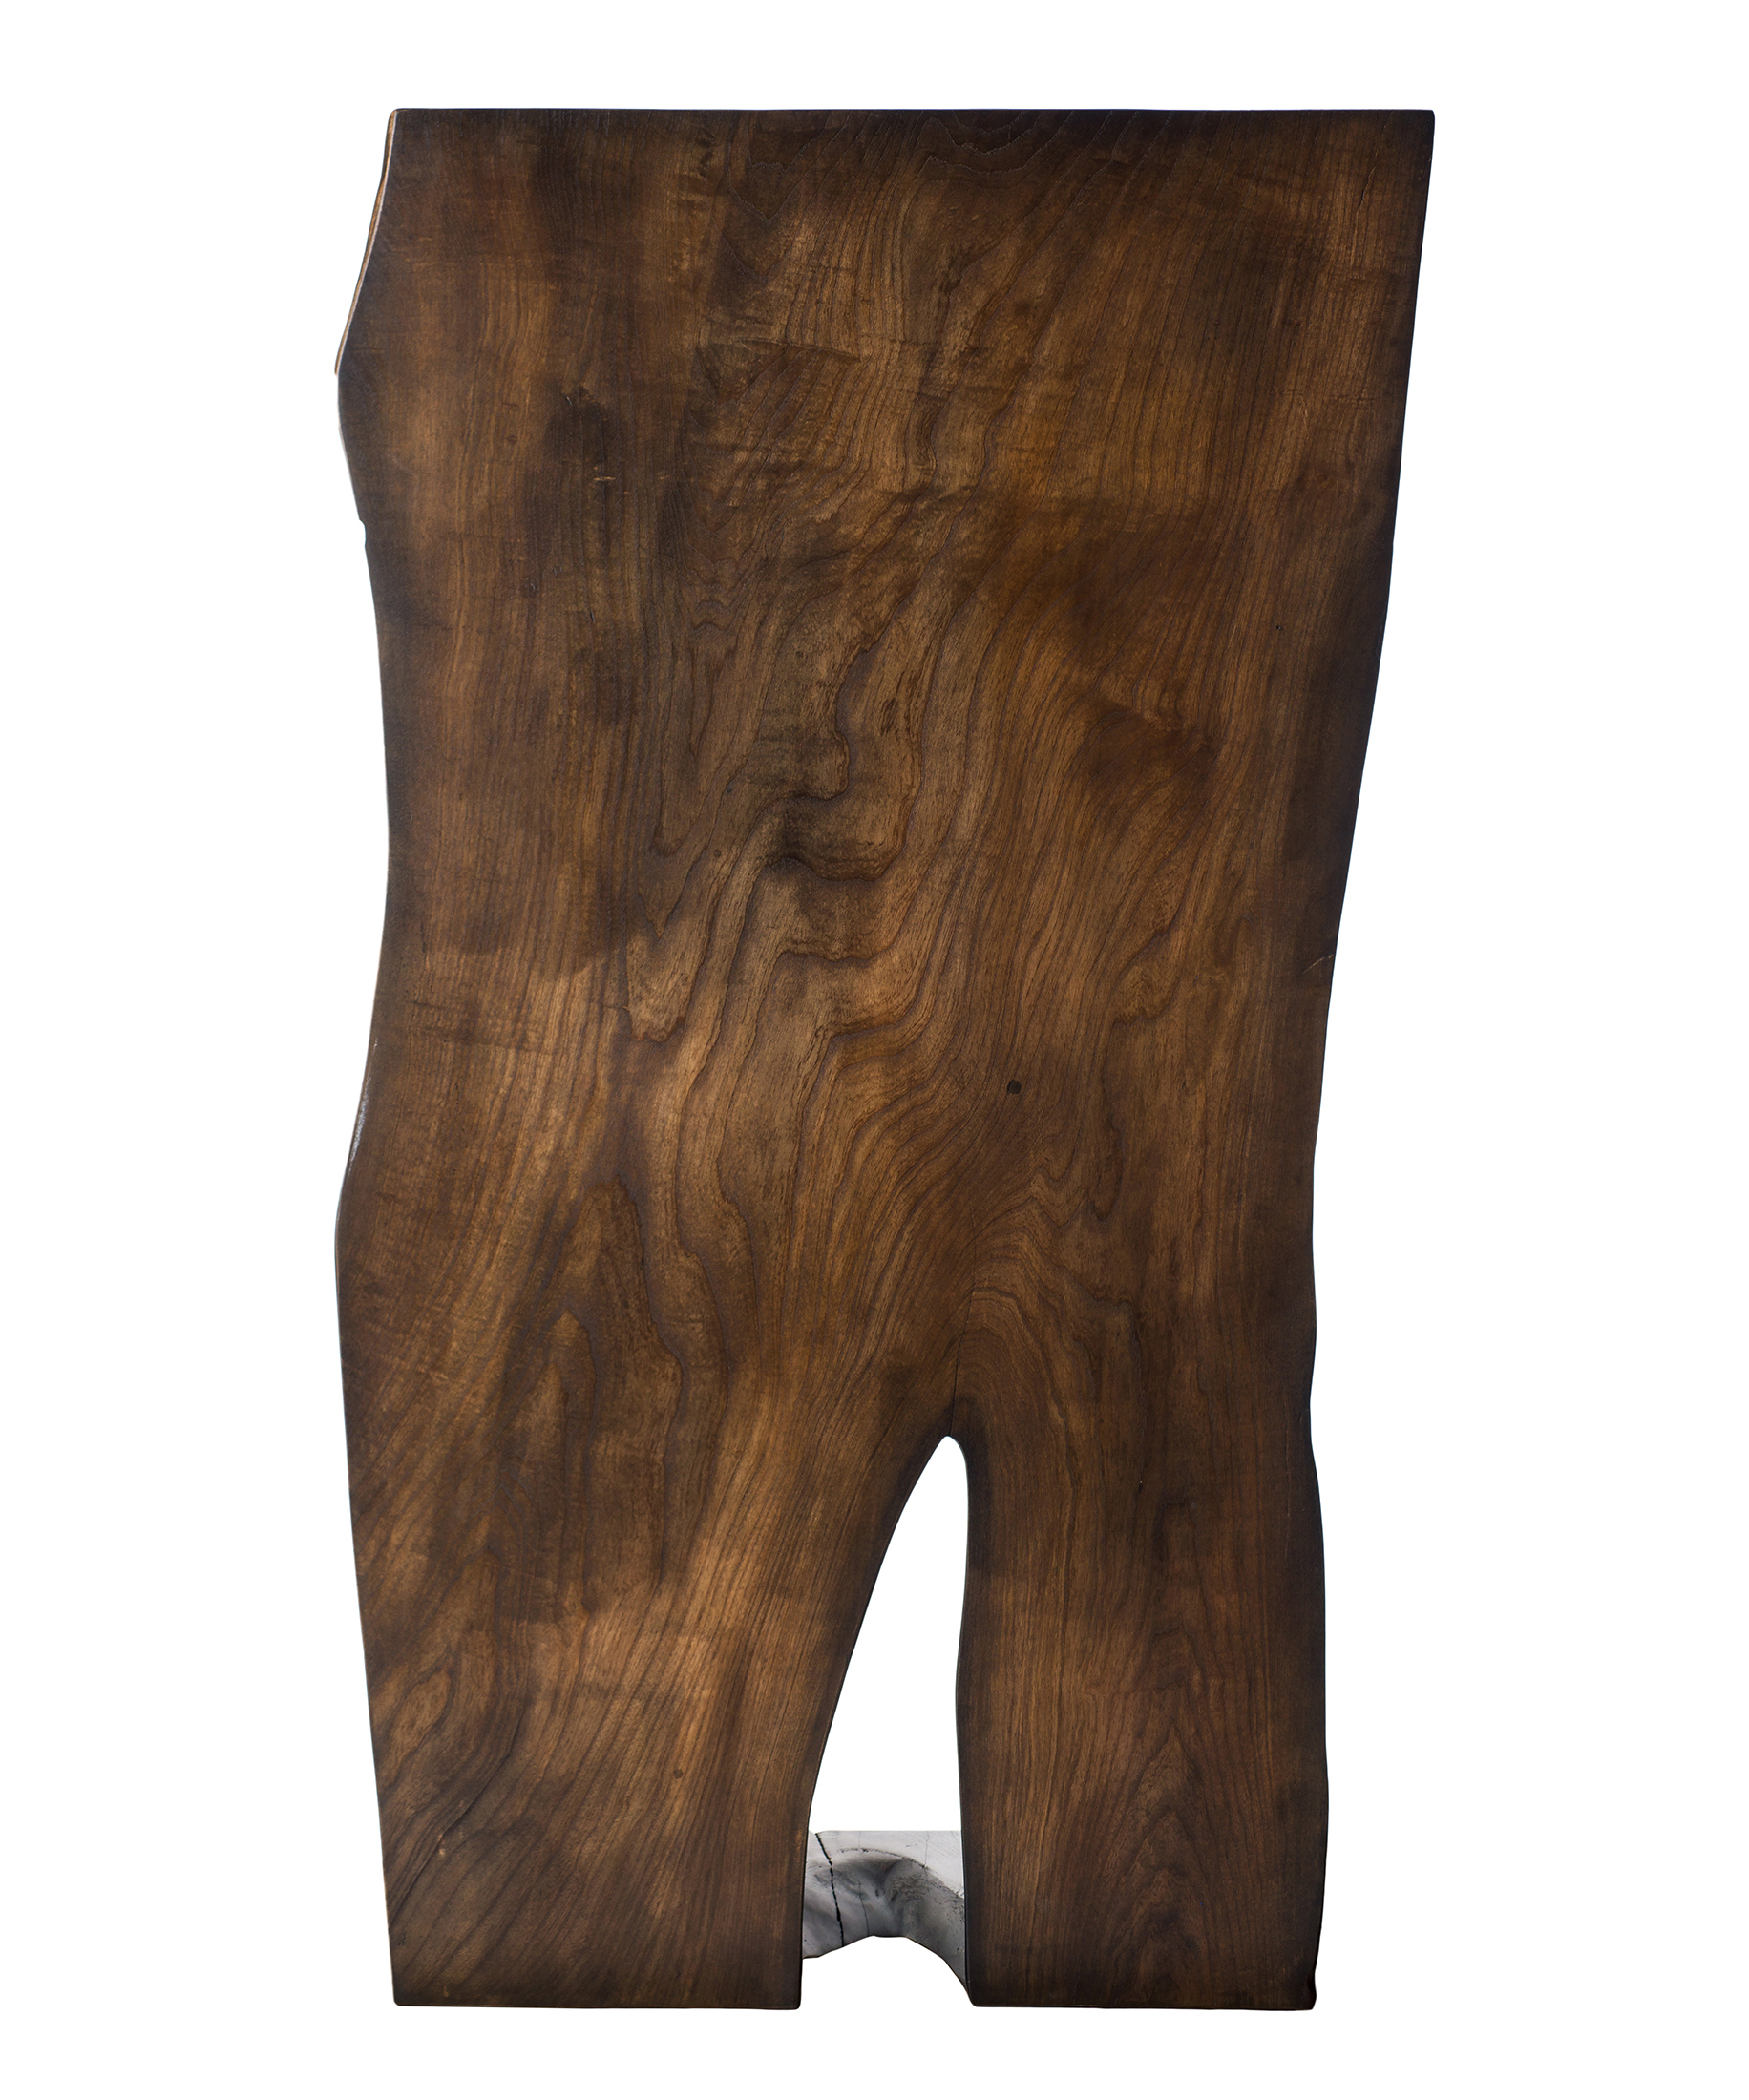 Waterfall Live Edge Cocktail Table